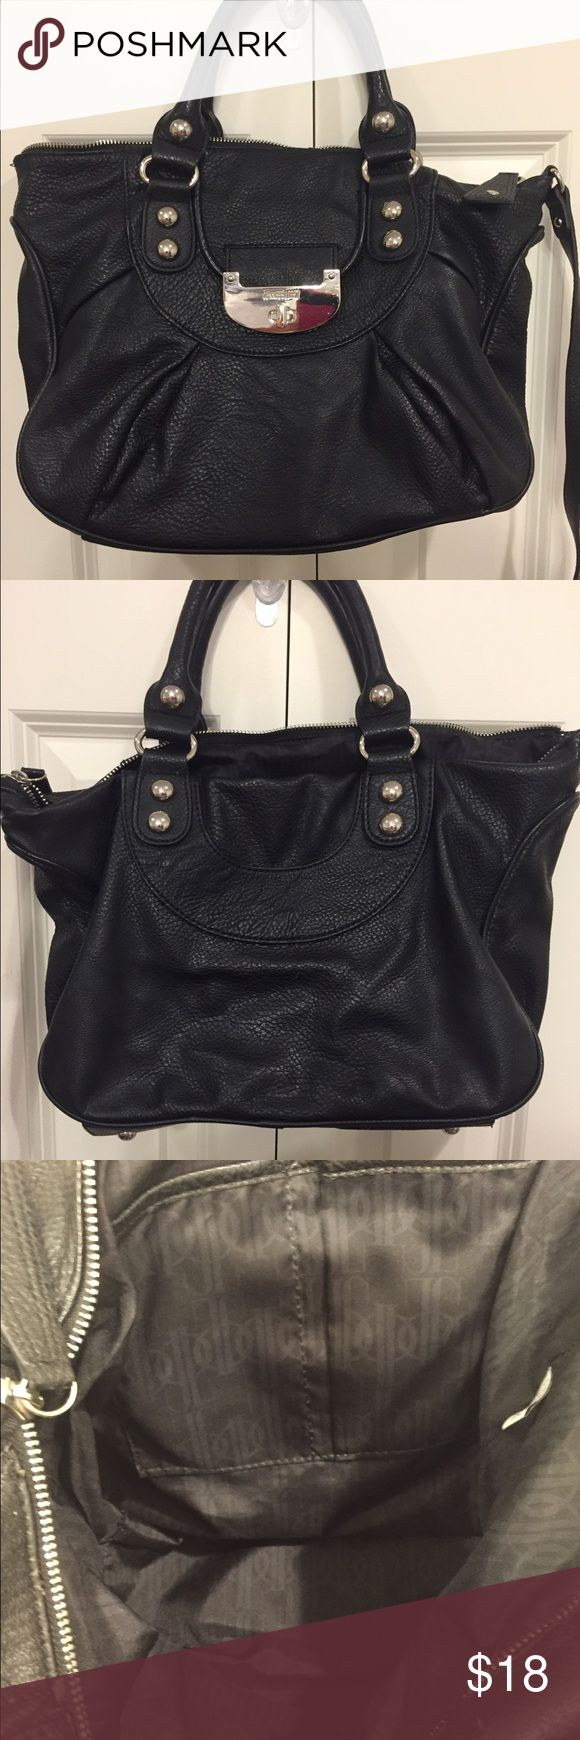 Jennifer Lopez Black Leather Purse This purse is in excellent condition other than the shoulder strap has come out on one side. Could most likely be repaired though since it just came out of the stitching (see picture four). You could either repair or just use the shorter handles. Still totally functional purse. There is an outer pouch under Jennifer Lopez plate and a couple small inside ones. Jennifer Lopez Bags